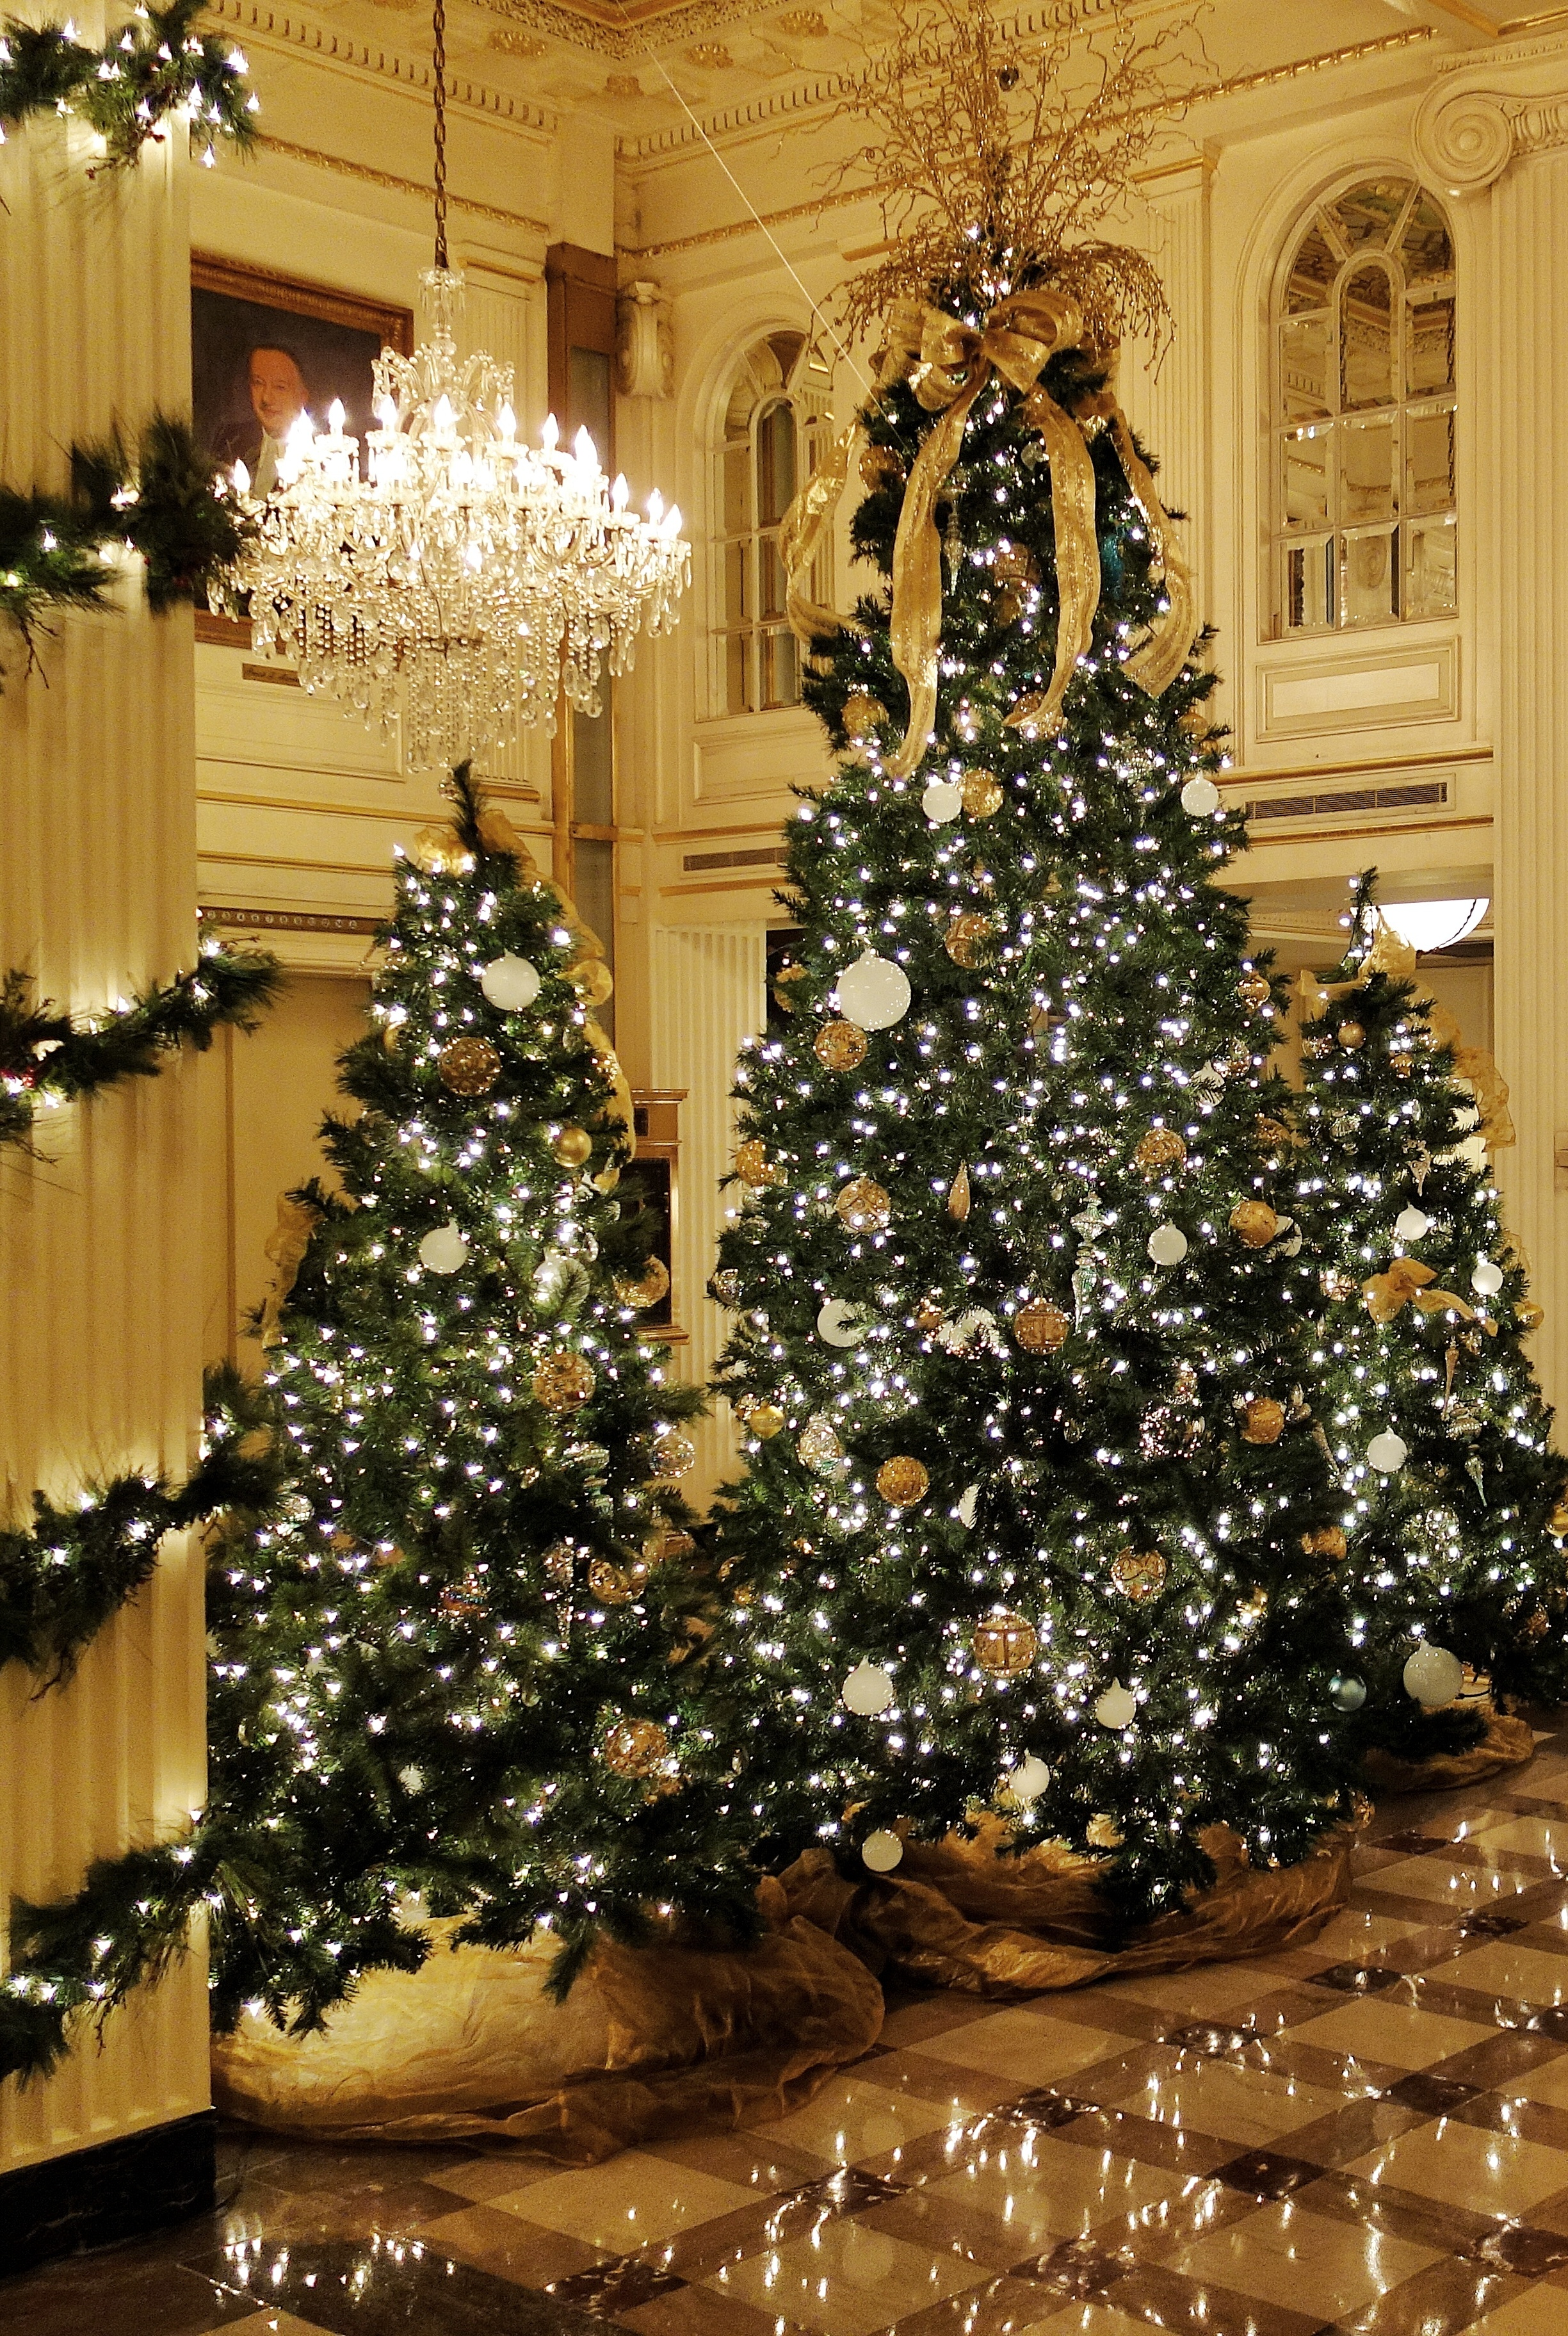 Christmas Decorations In Hotel Lobby : The best holiday decorations in new orleans